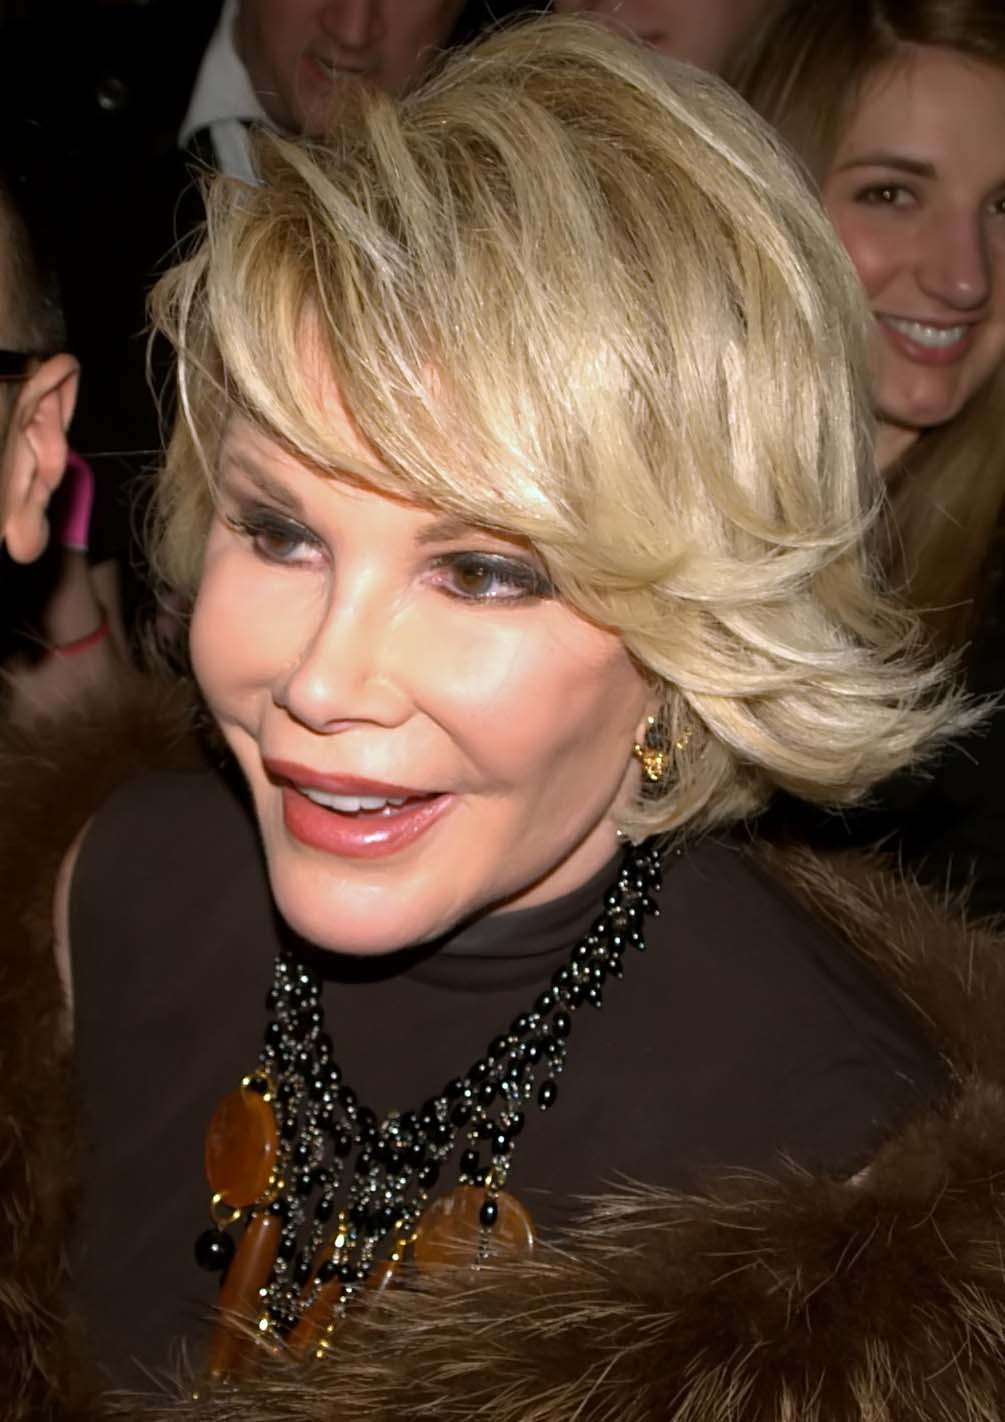 Joan_Rivers_2010_-_David_Shankbone.jpg